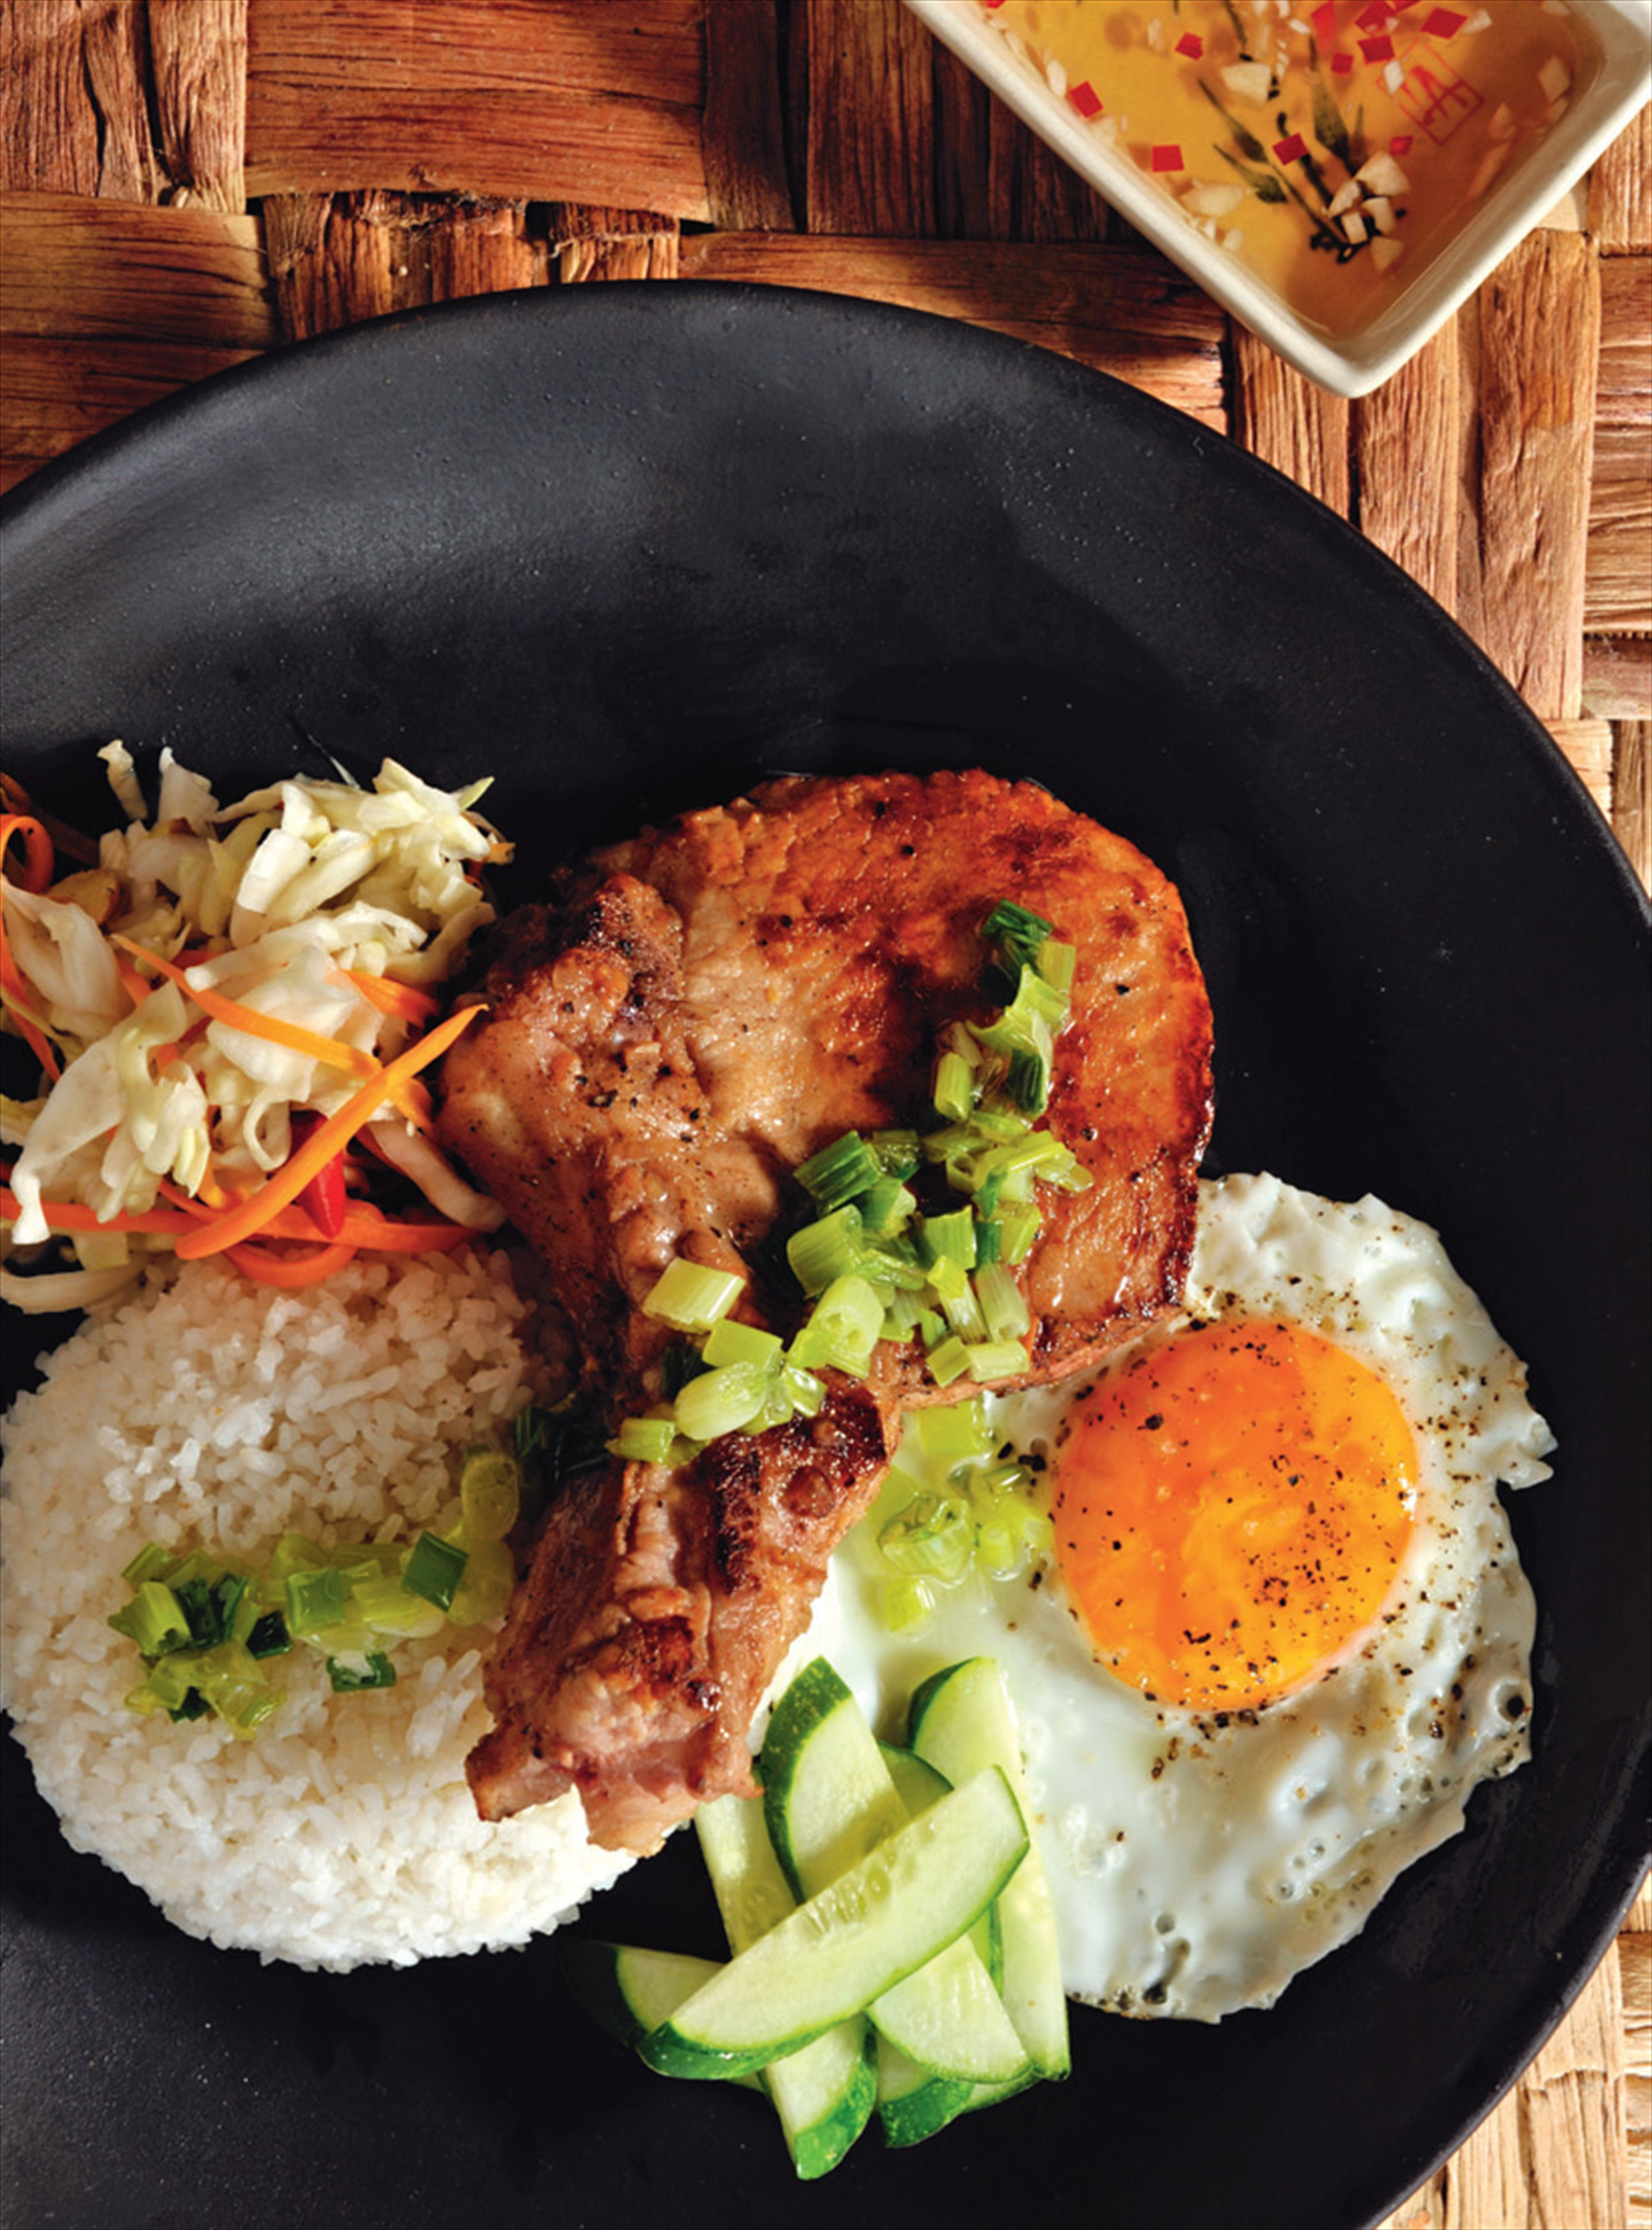 Broken rice with grilled pork and egg, sunny side up